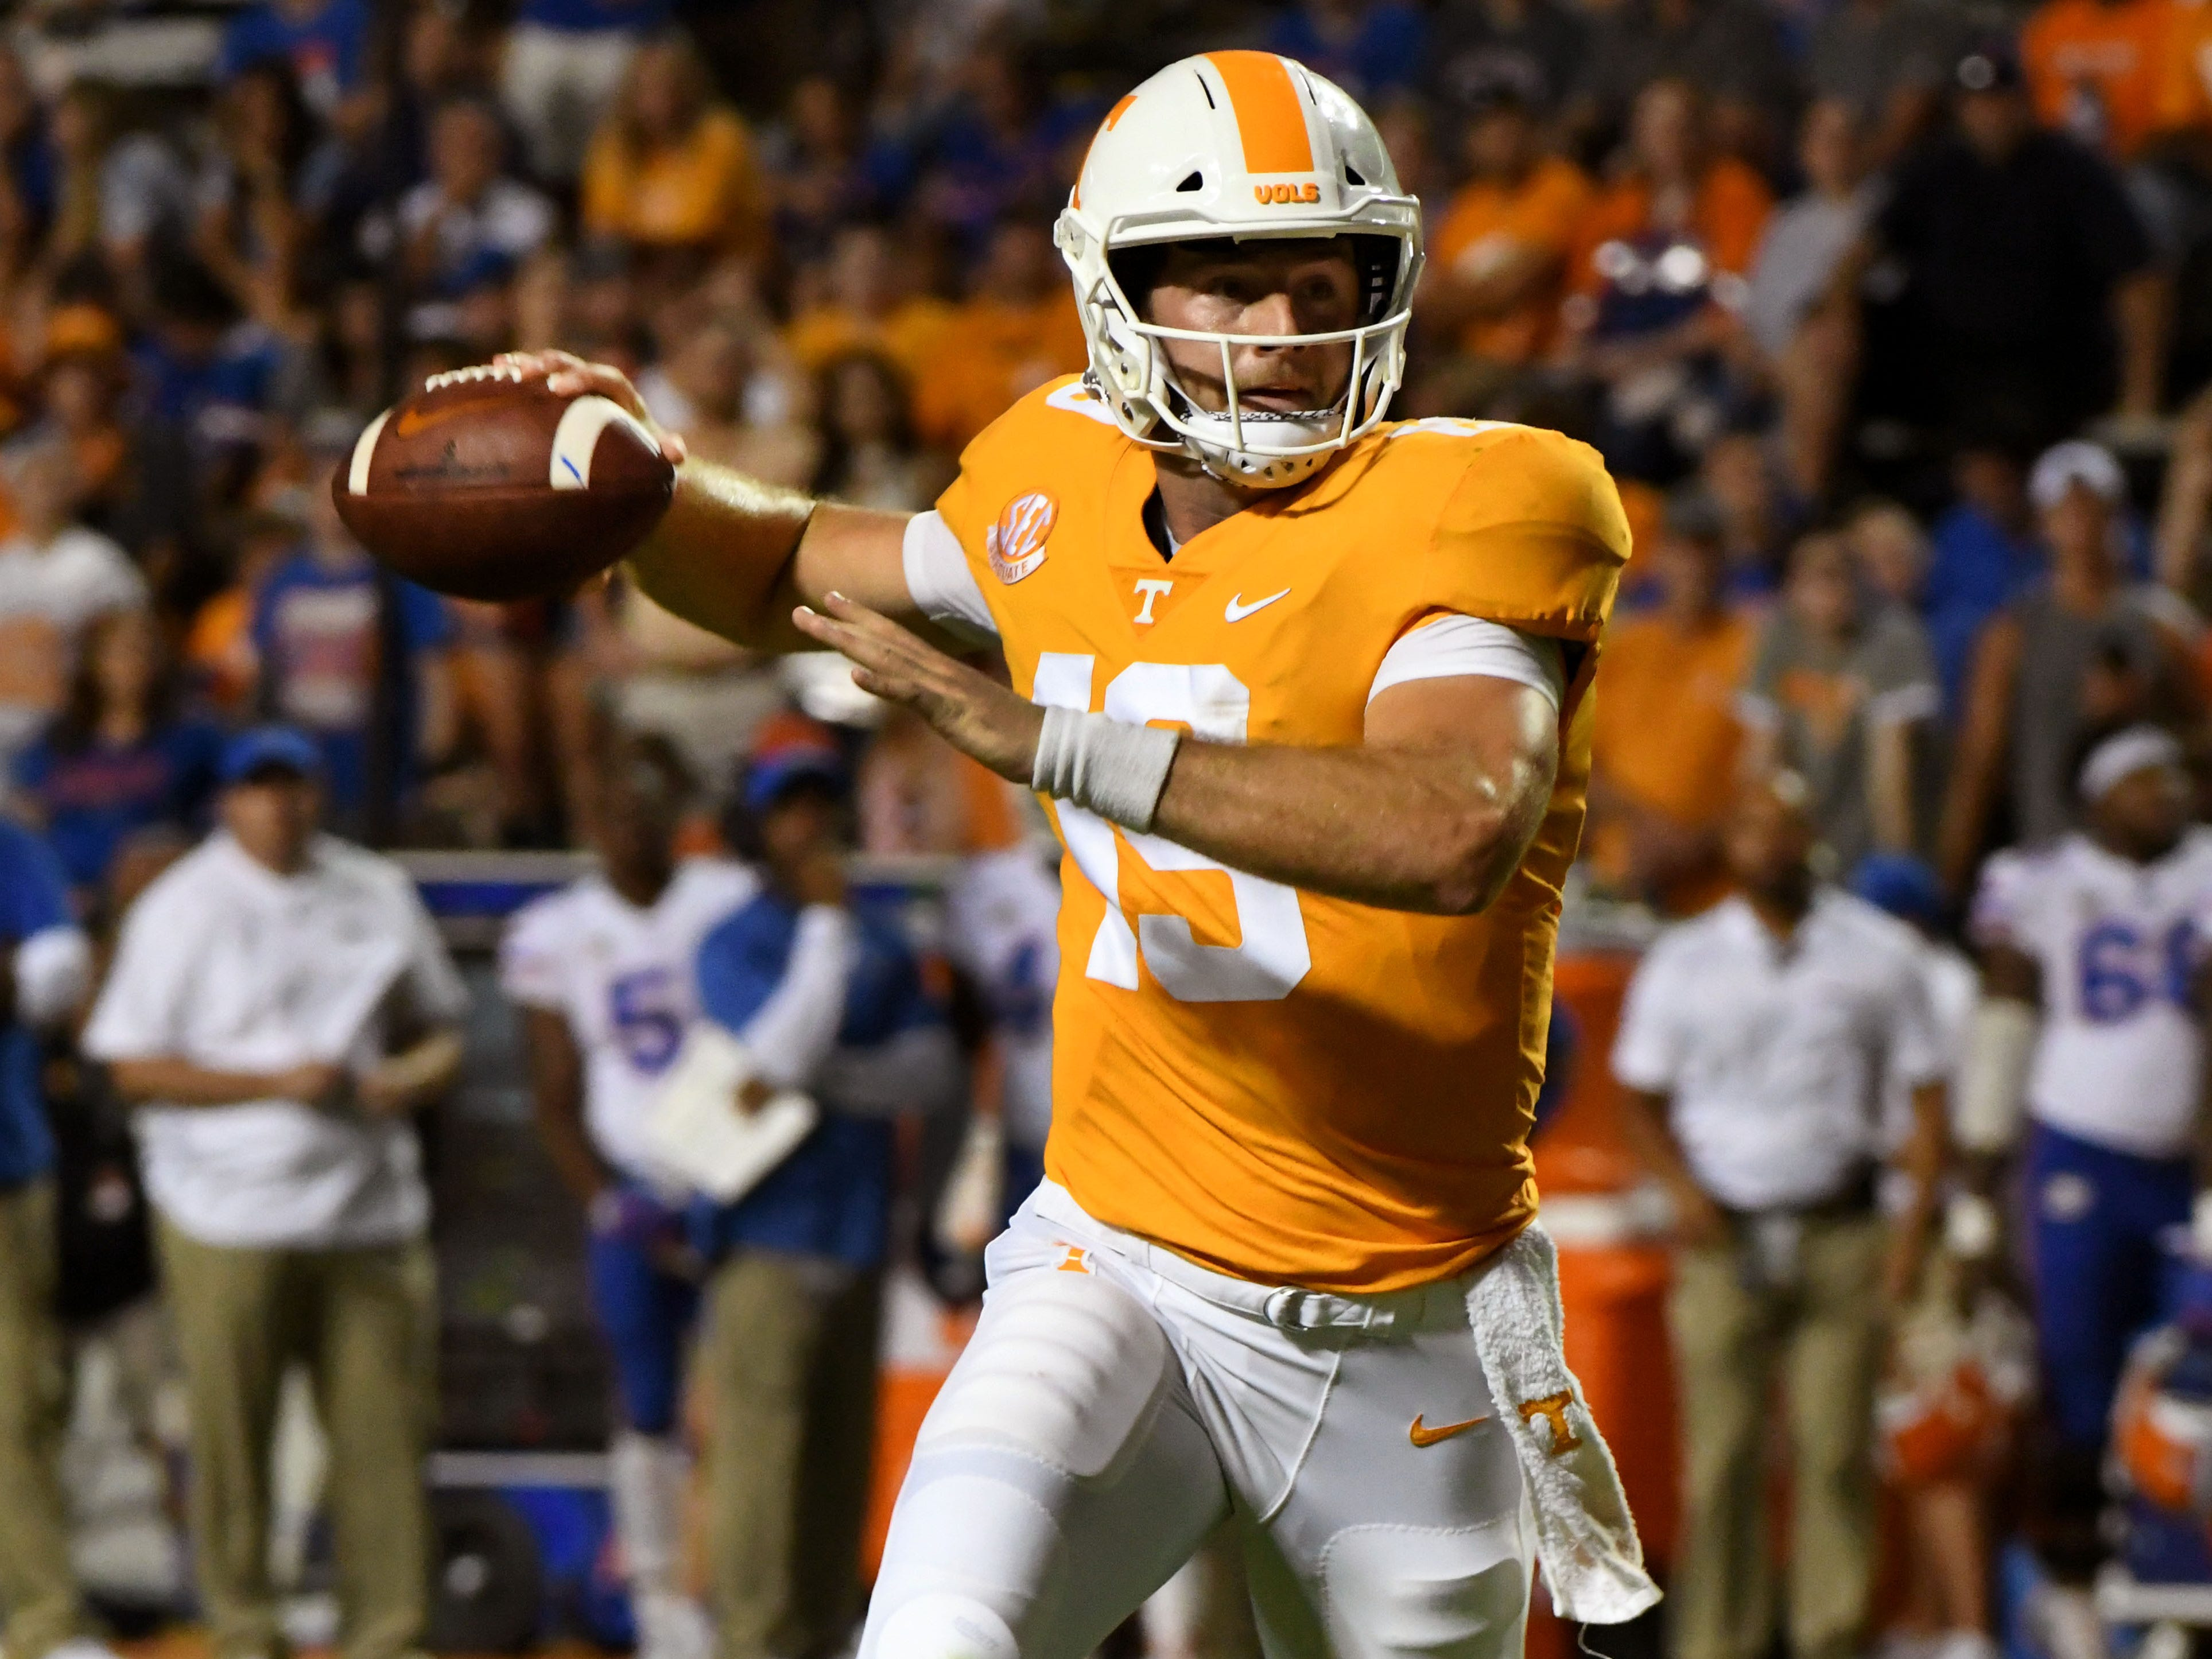 Tennessee quarterback Keller Chryst (19) during second half of their 47-21 loss to Florida in Neyland Stadium Saturday, September 22, 2018 in Knoxville, Tenn.